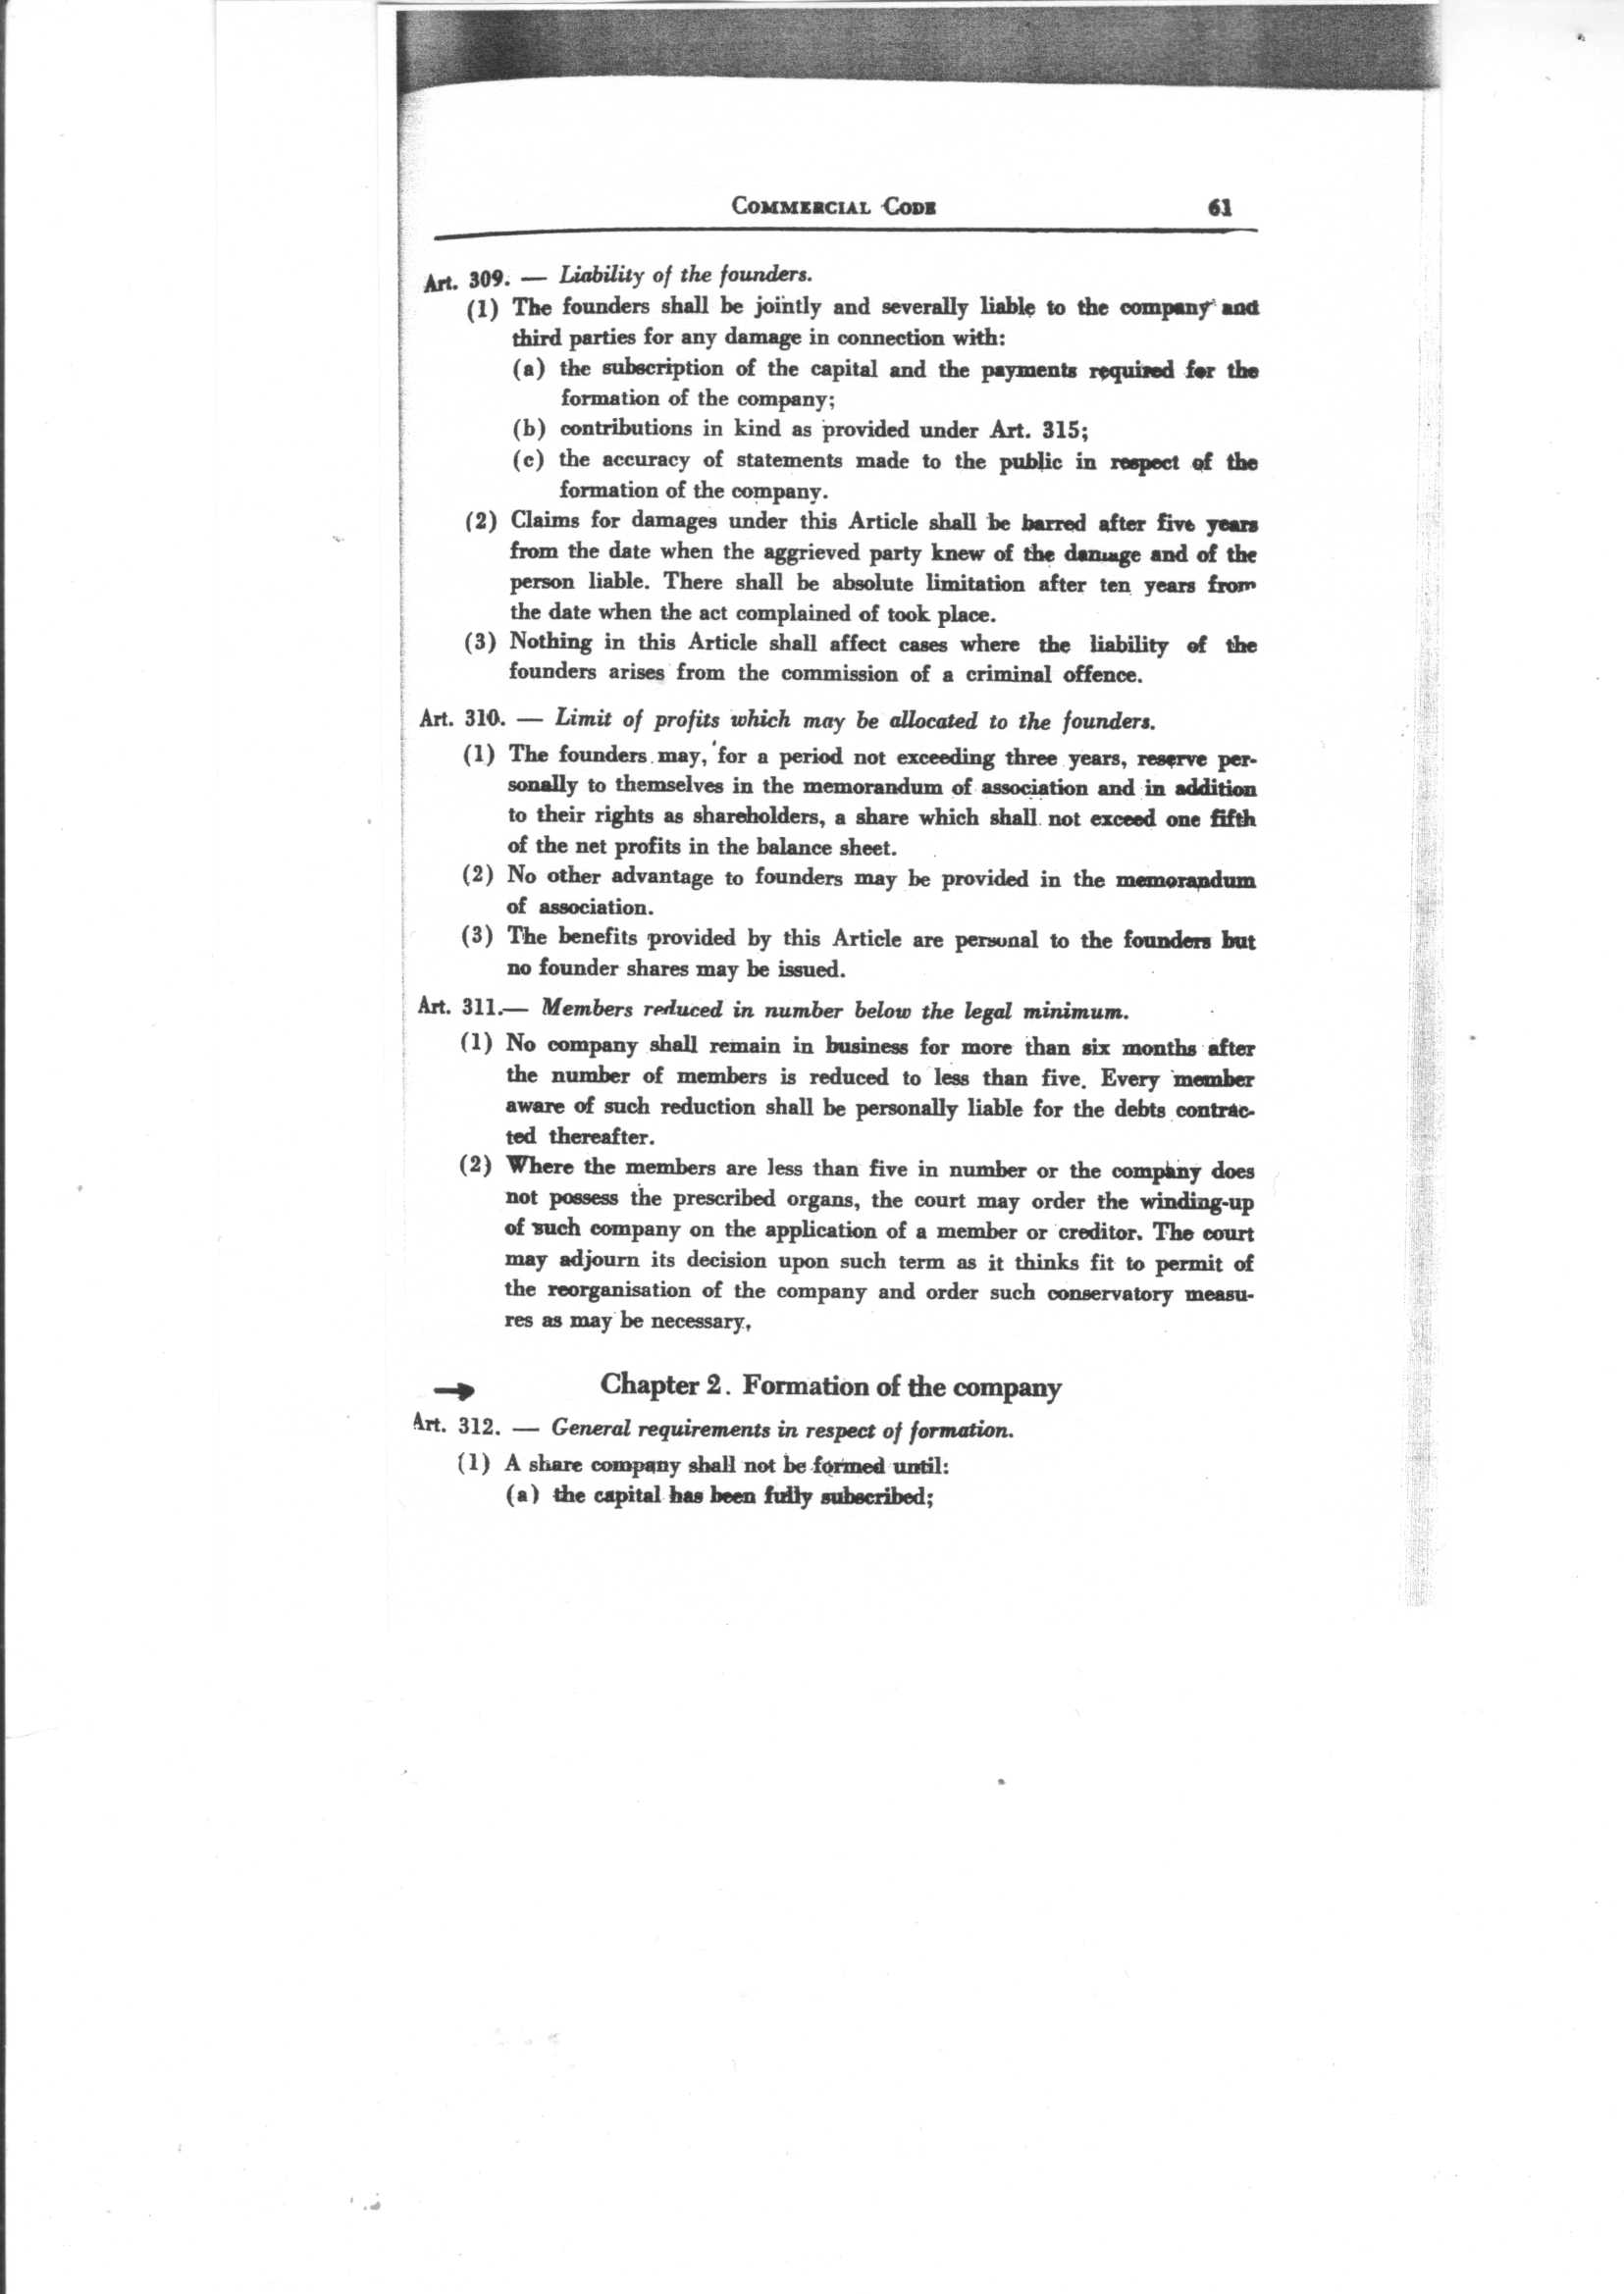 print list of steps